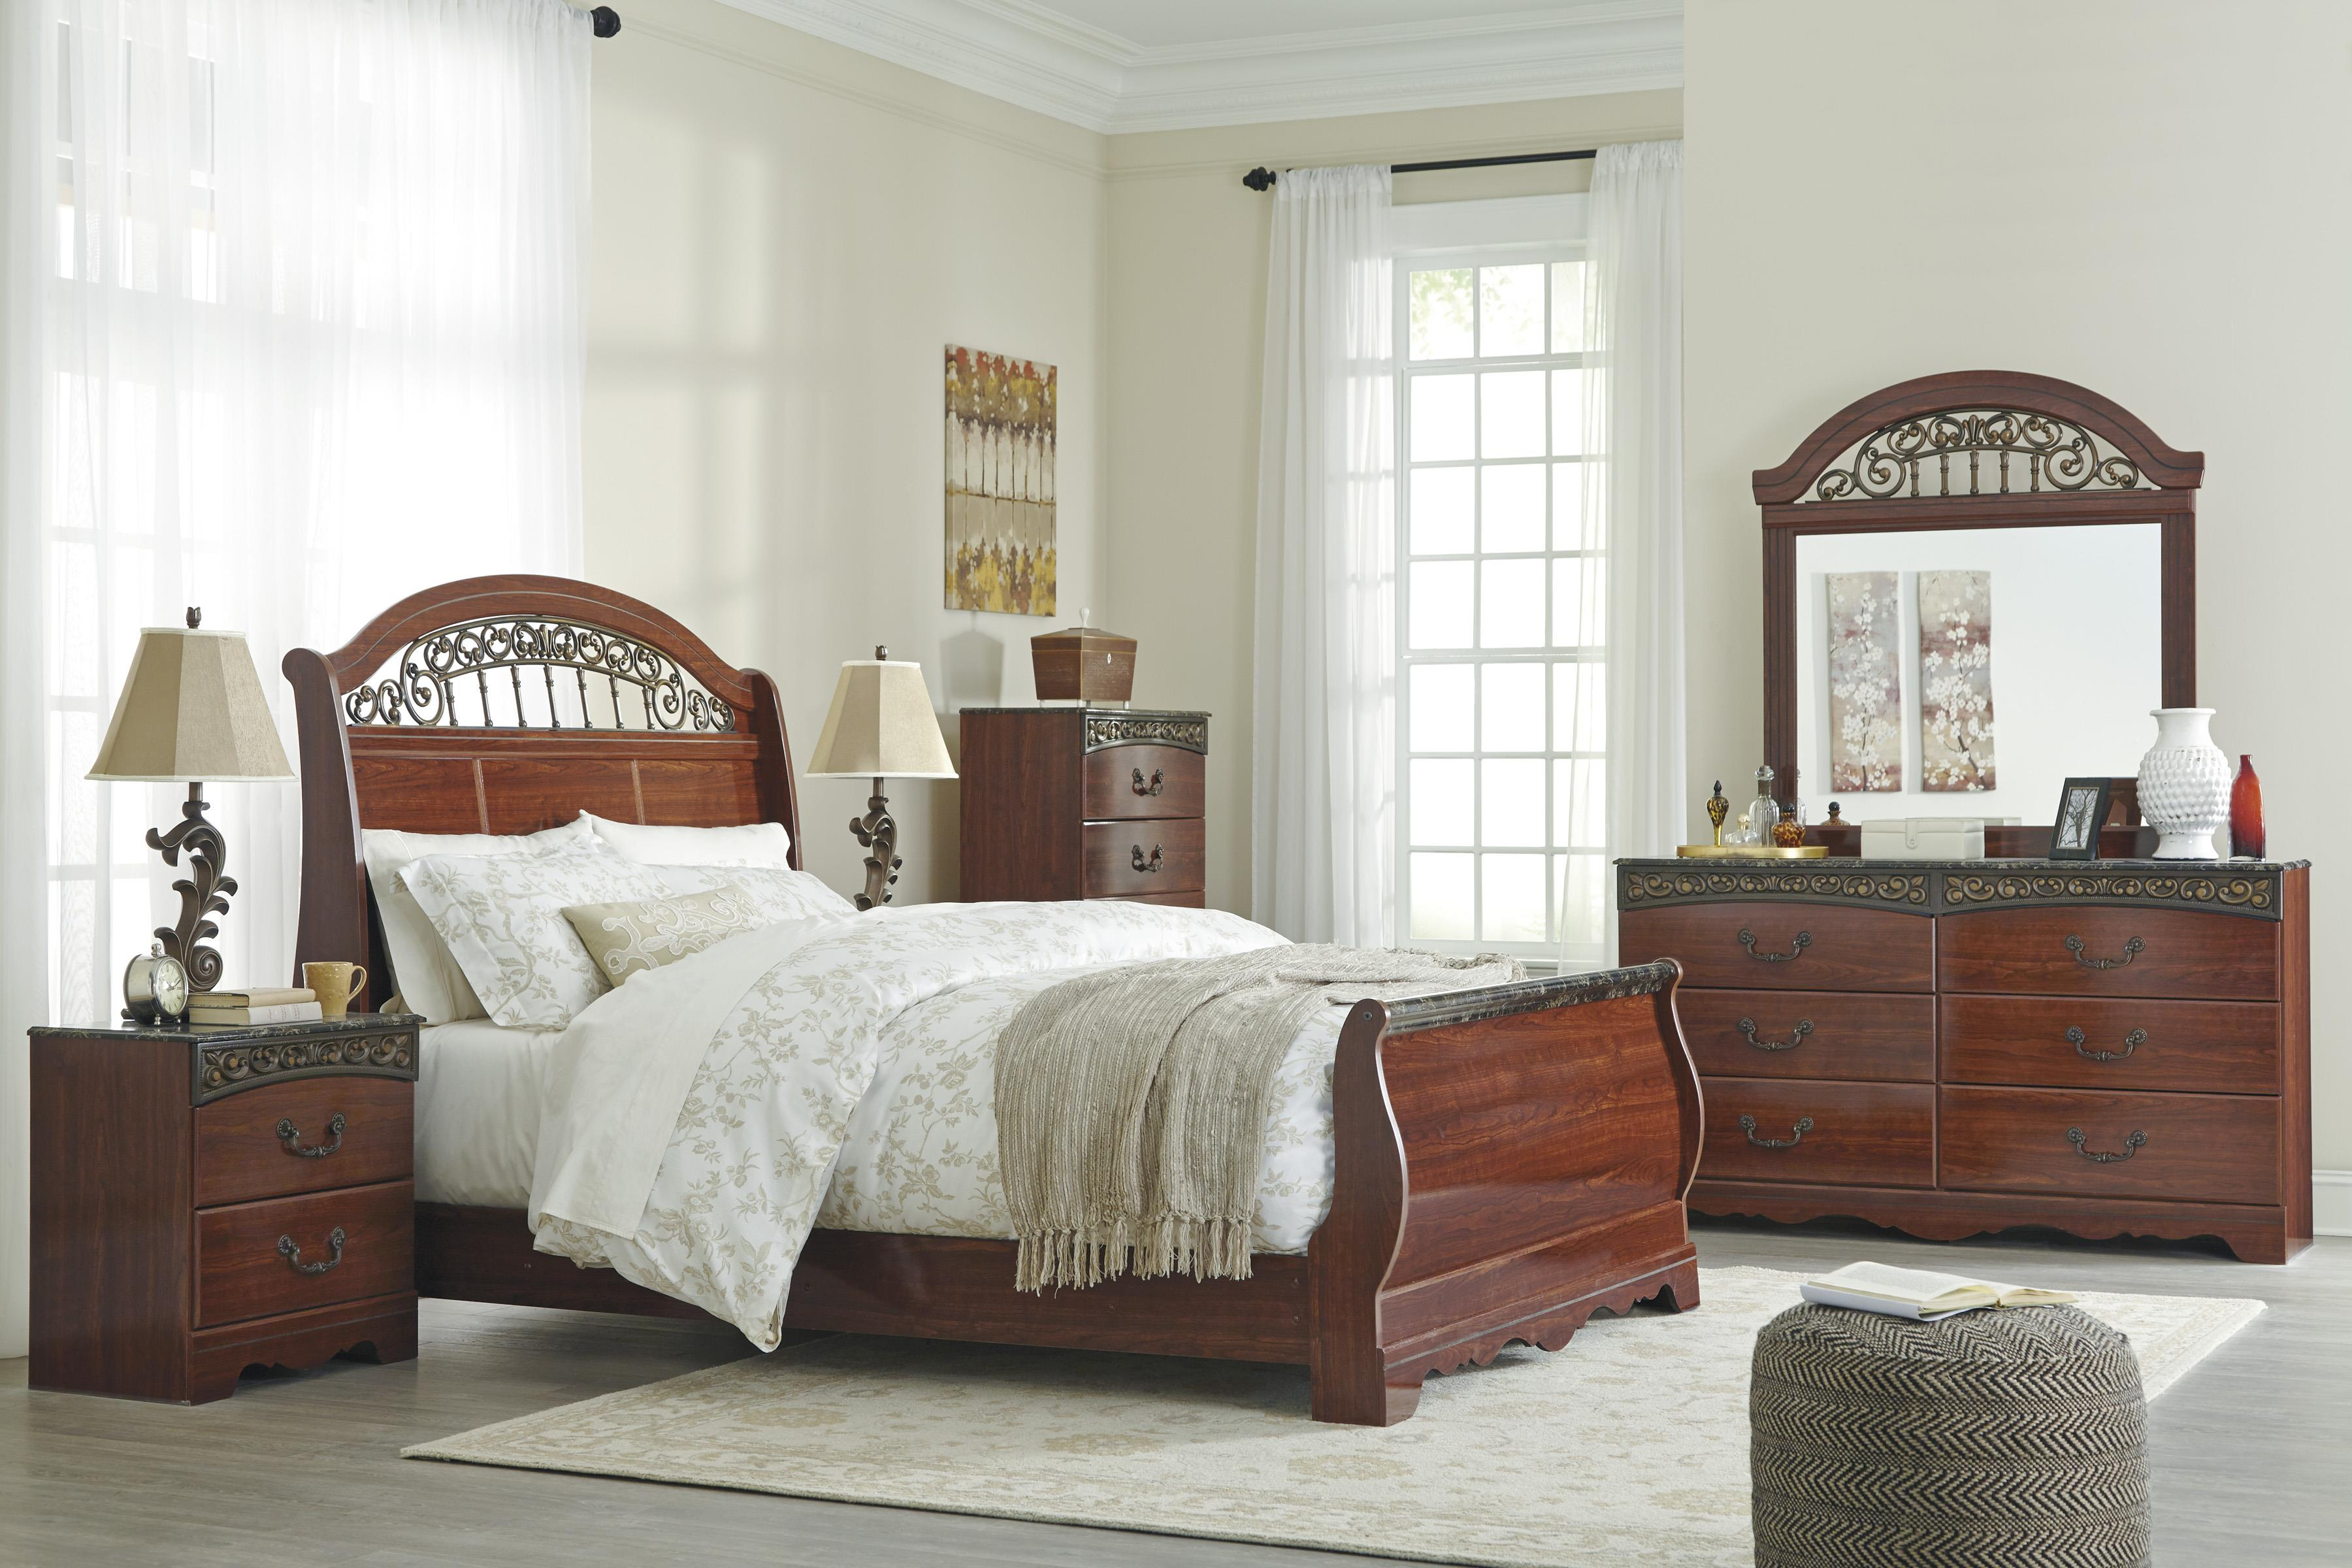 Signature Design By Ashley Fairbrooks Estate Queen Bedroom Group Del Sol Fu